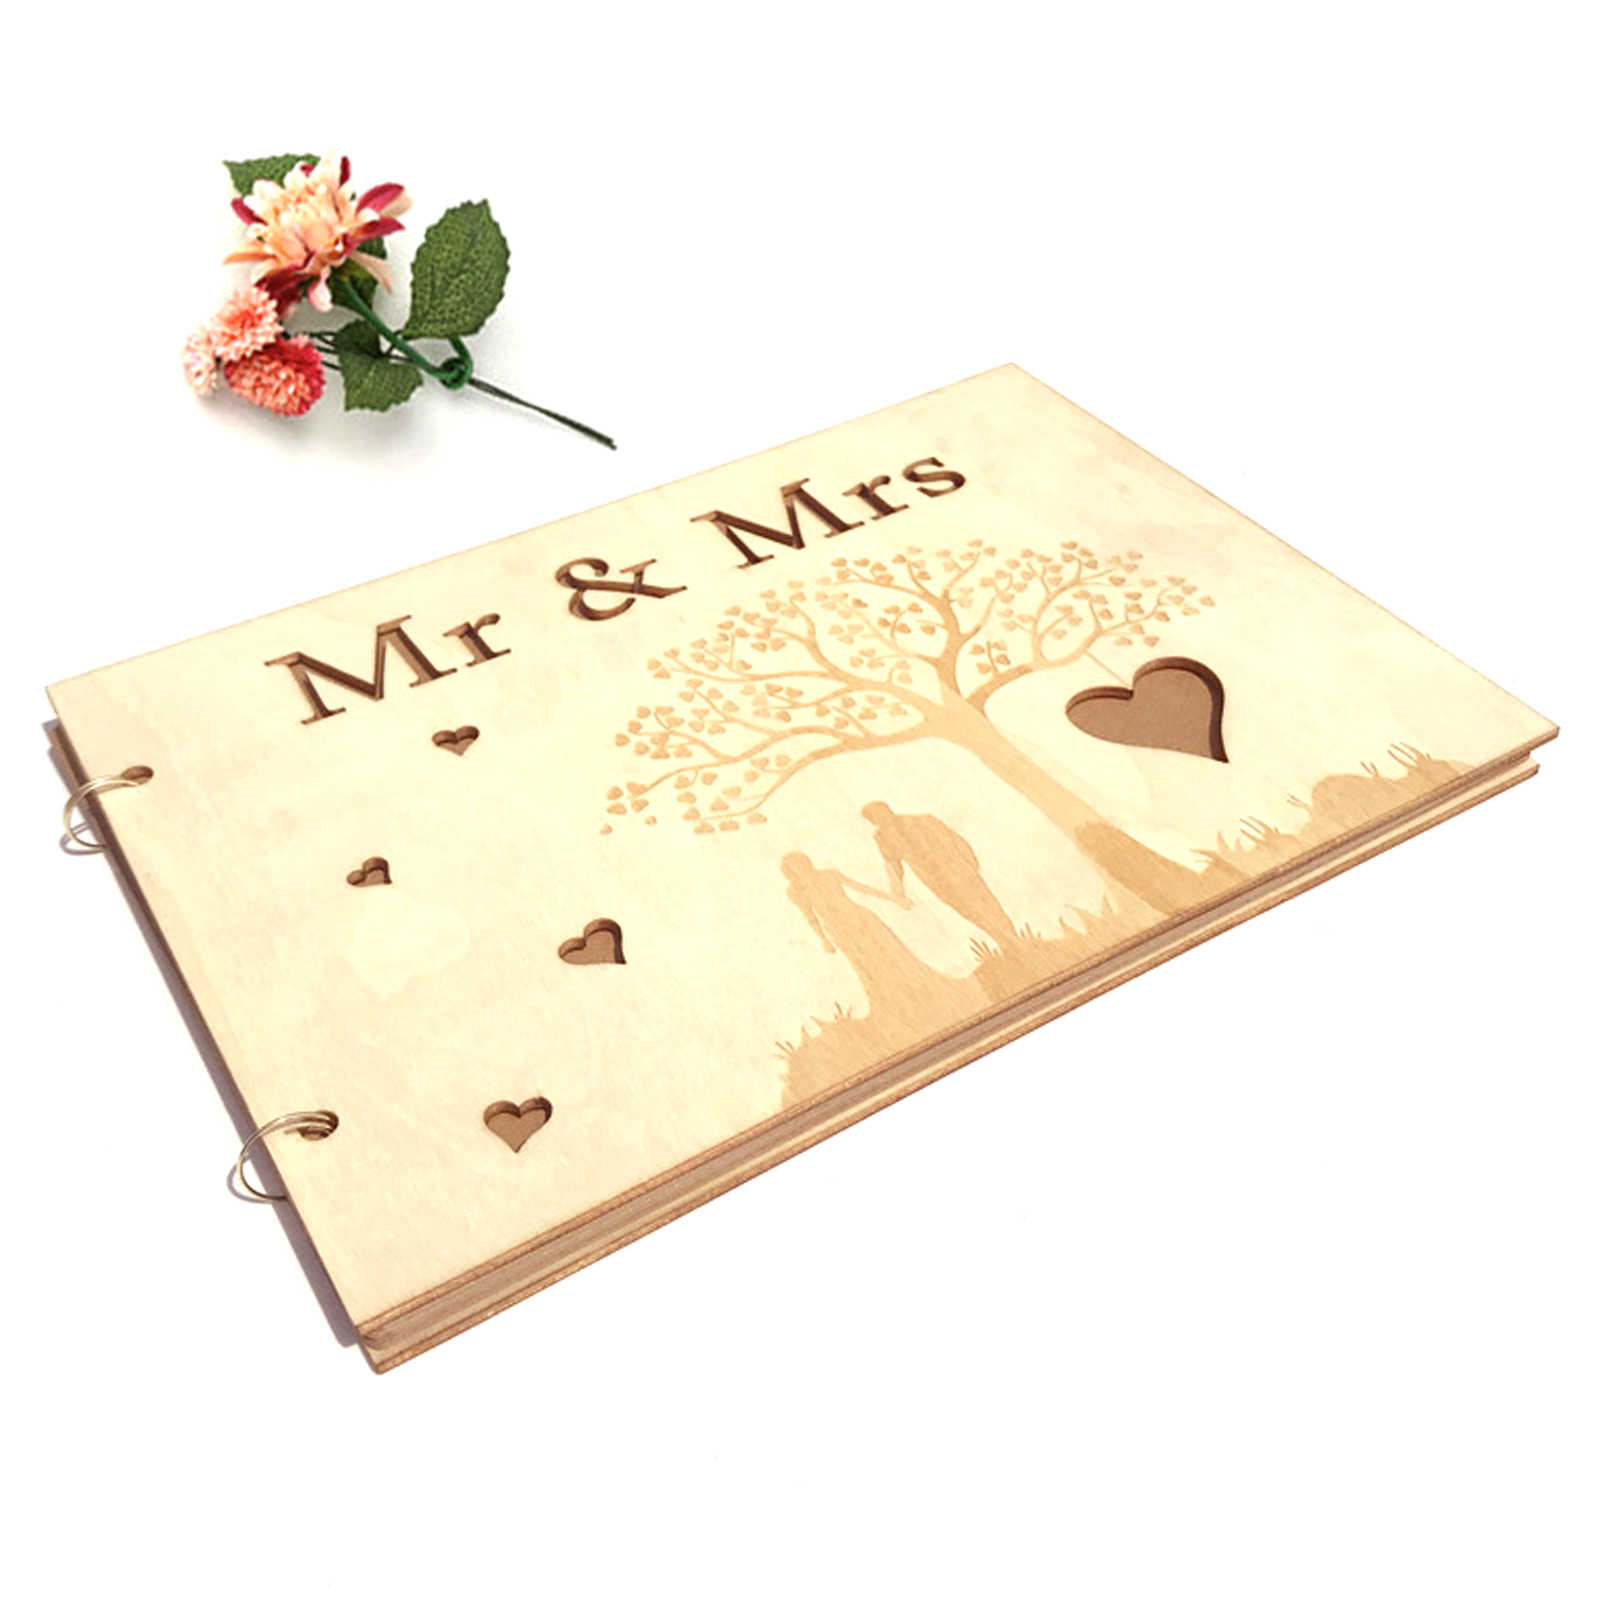 Wedding Guestbook and Heart Stencil A4 Size